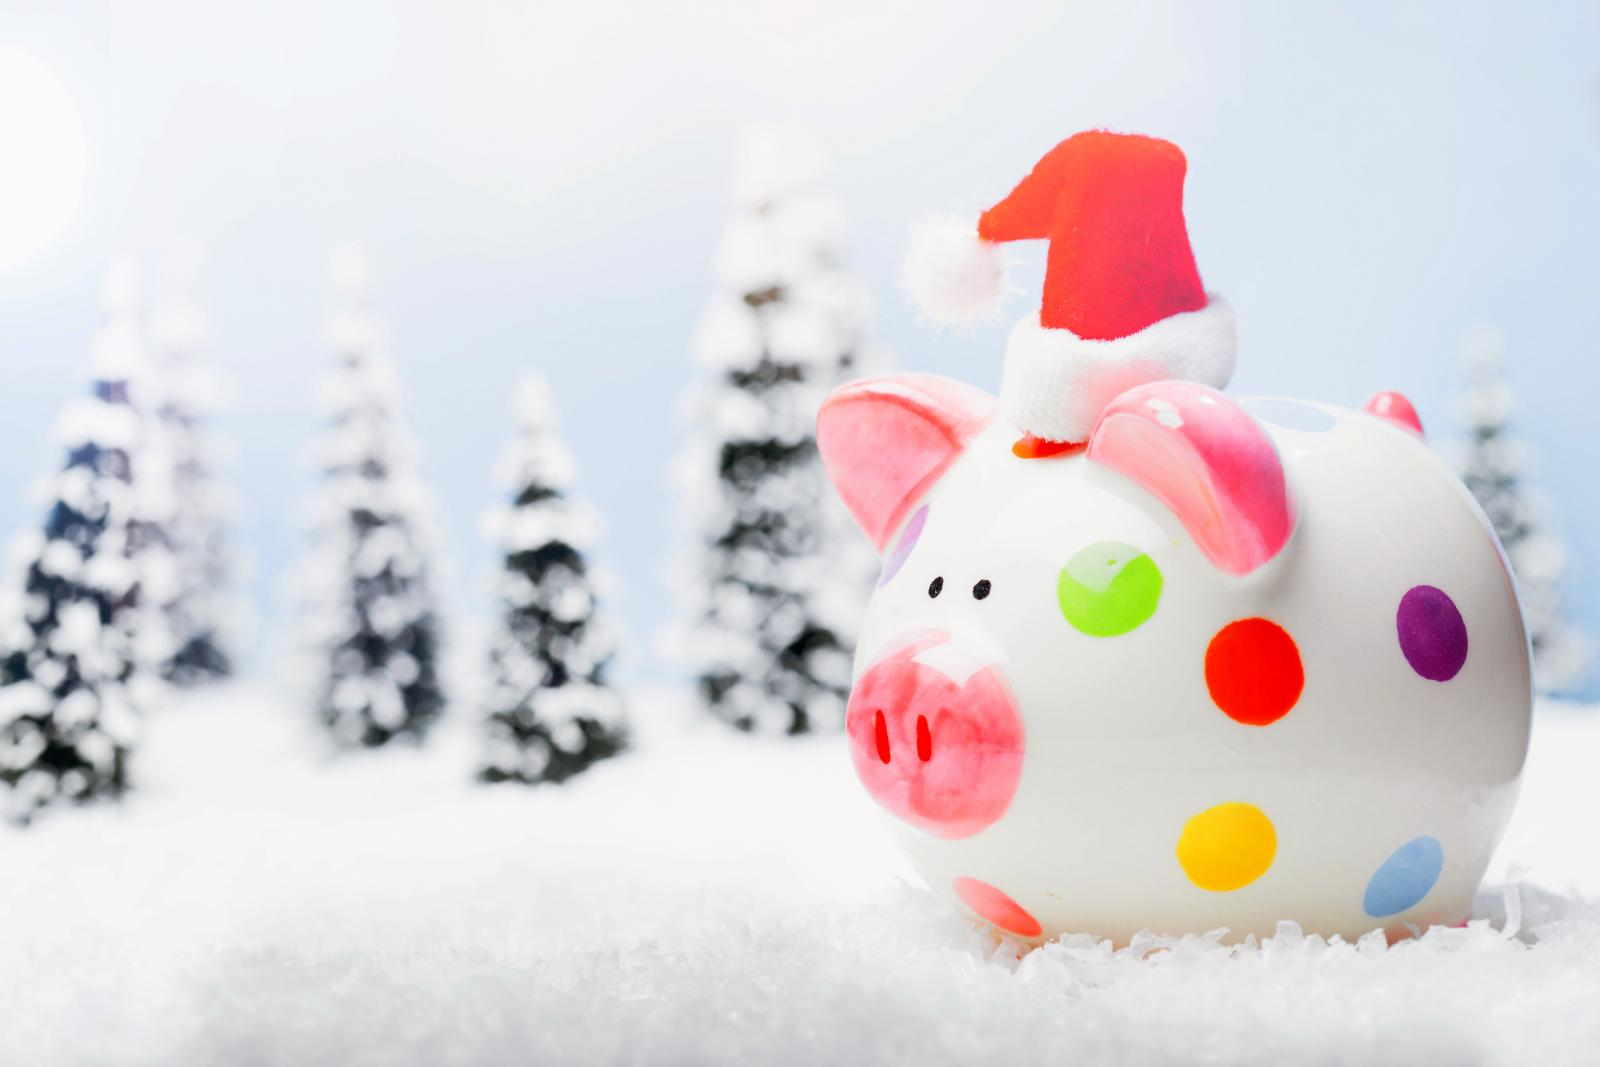 Saving money at Christmas, piggy bank in the snow